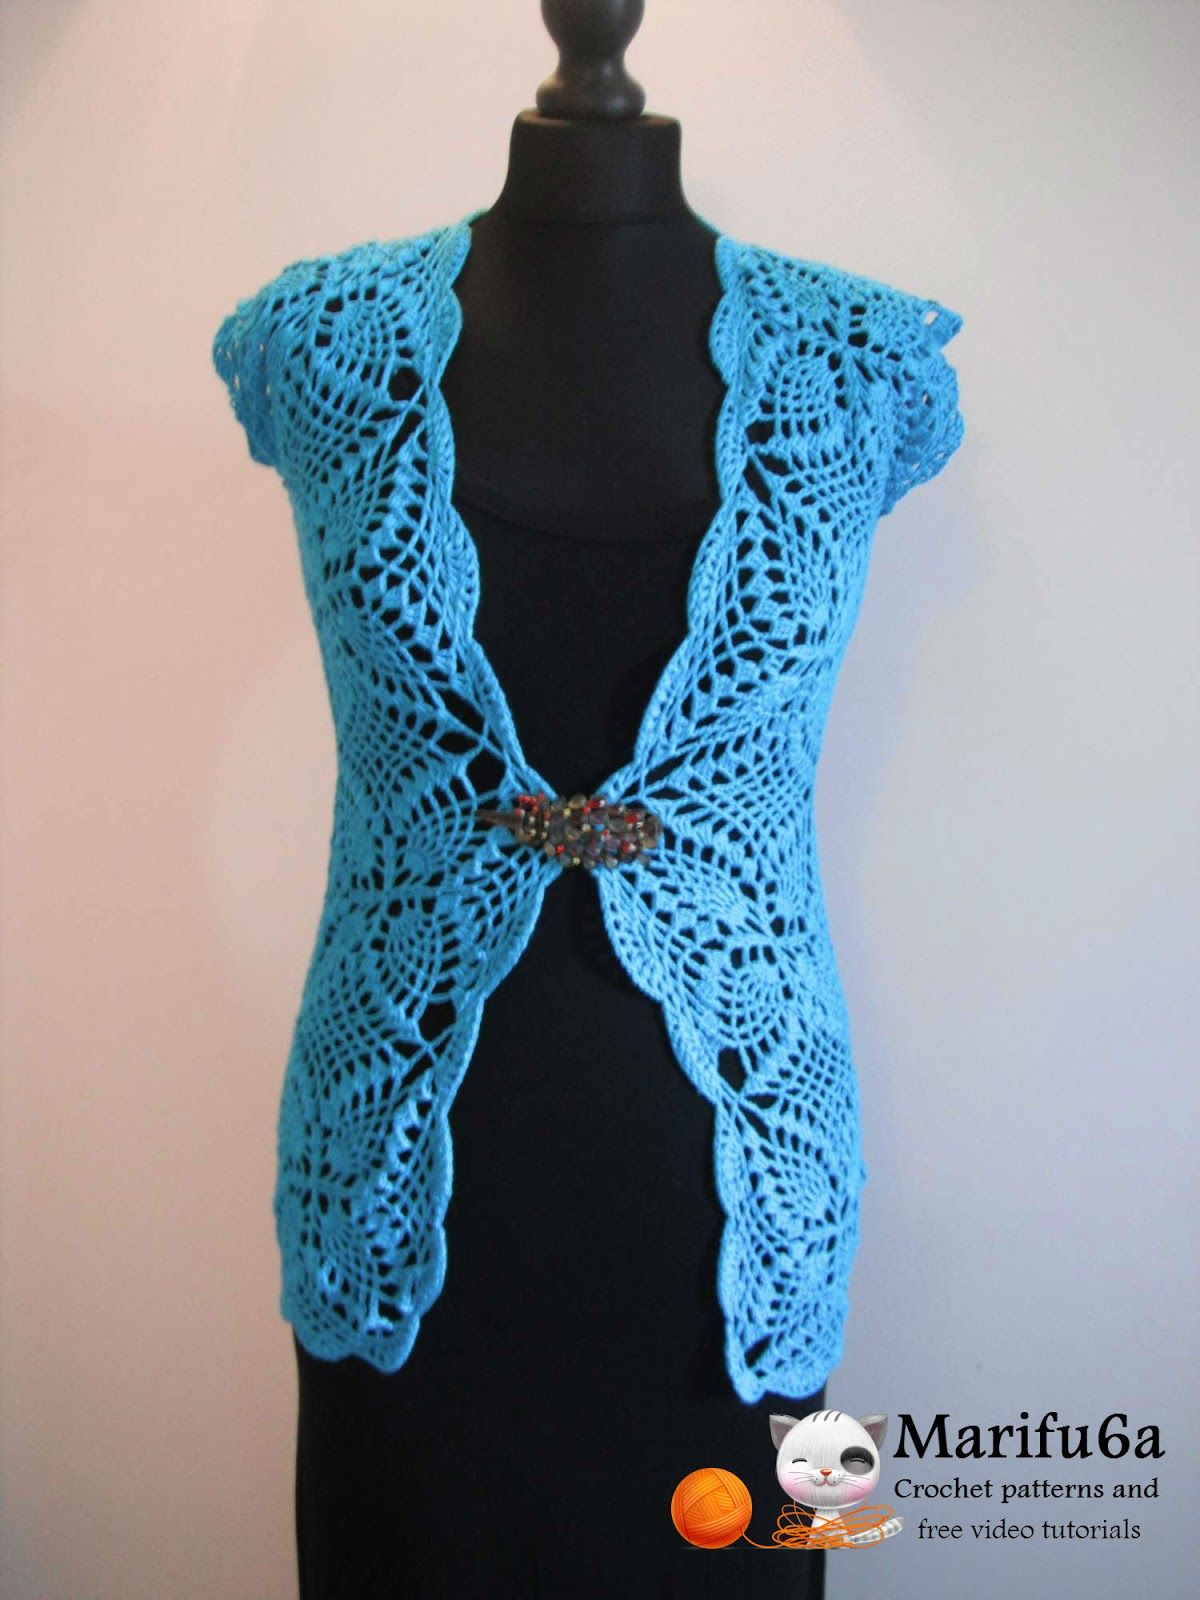 Free crochet patterns and video tutorials how to crochet crochet pattern pineapple cardigan by skill level intermediate size s l xl xxxl material yarn and bankloansurffo Choice Image